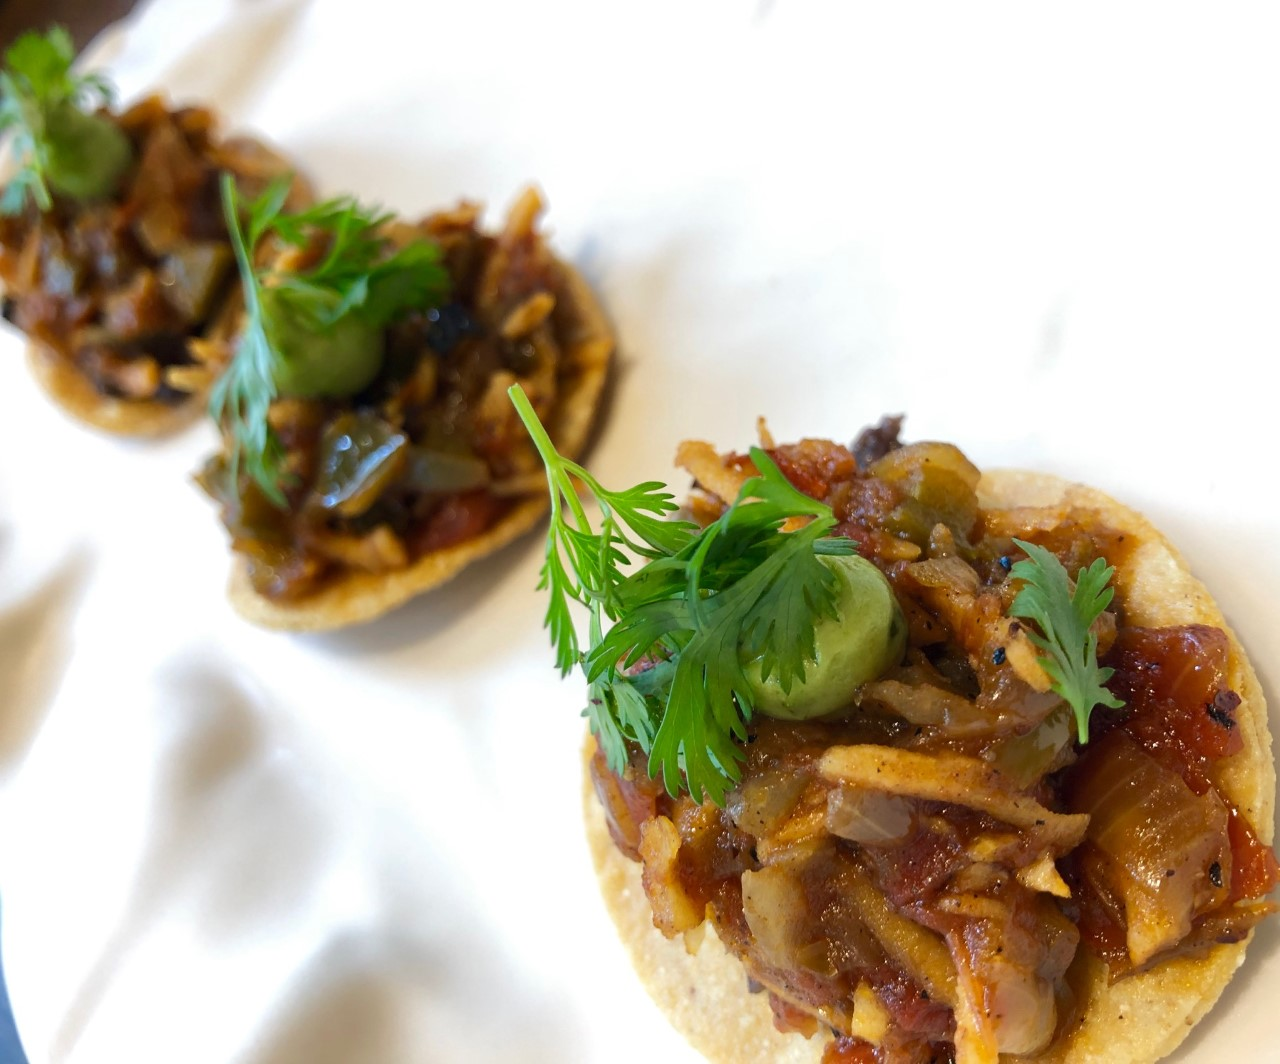 Tostadas 'mentiras' made with coconut